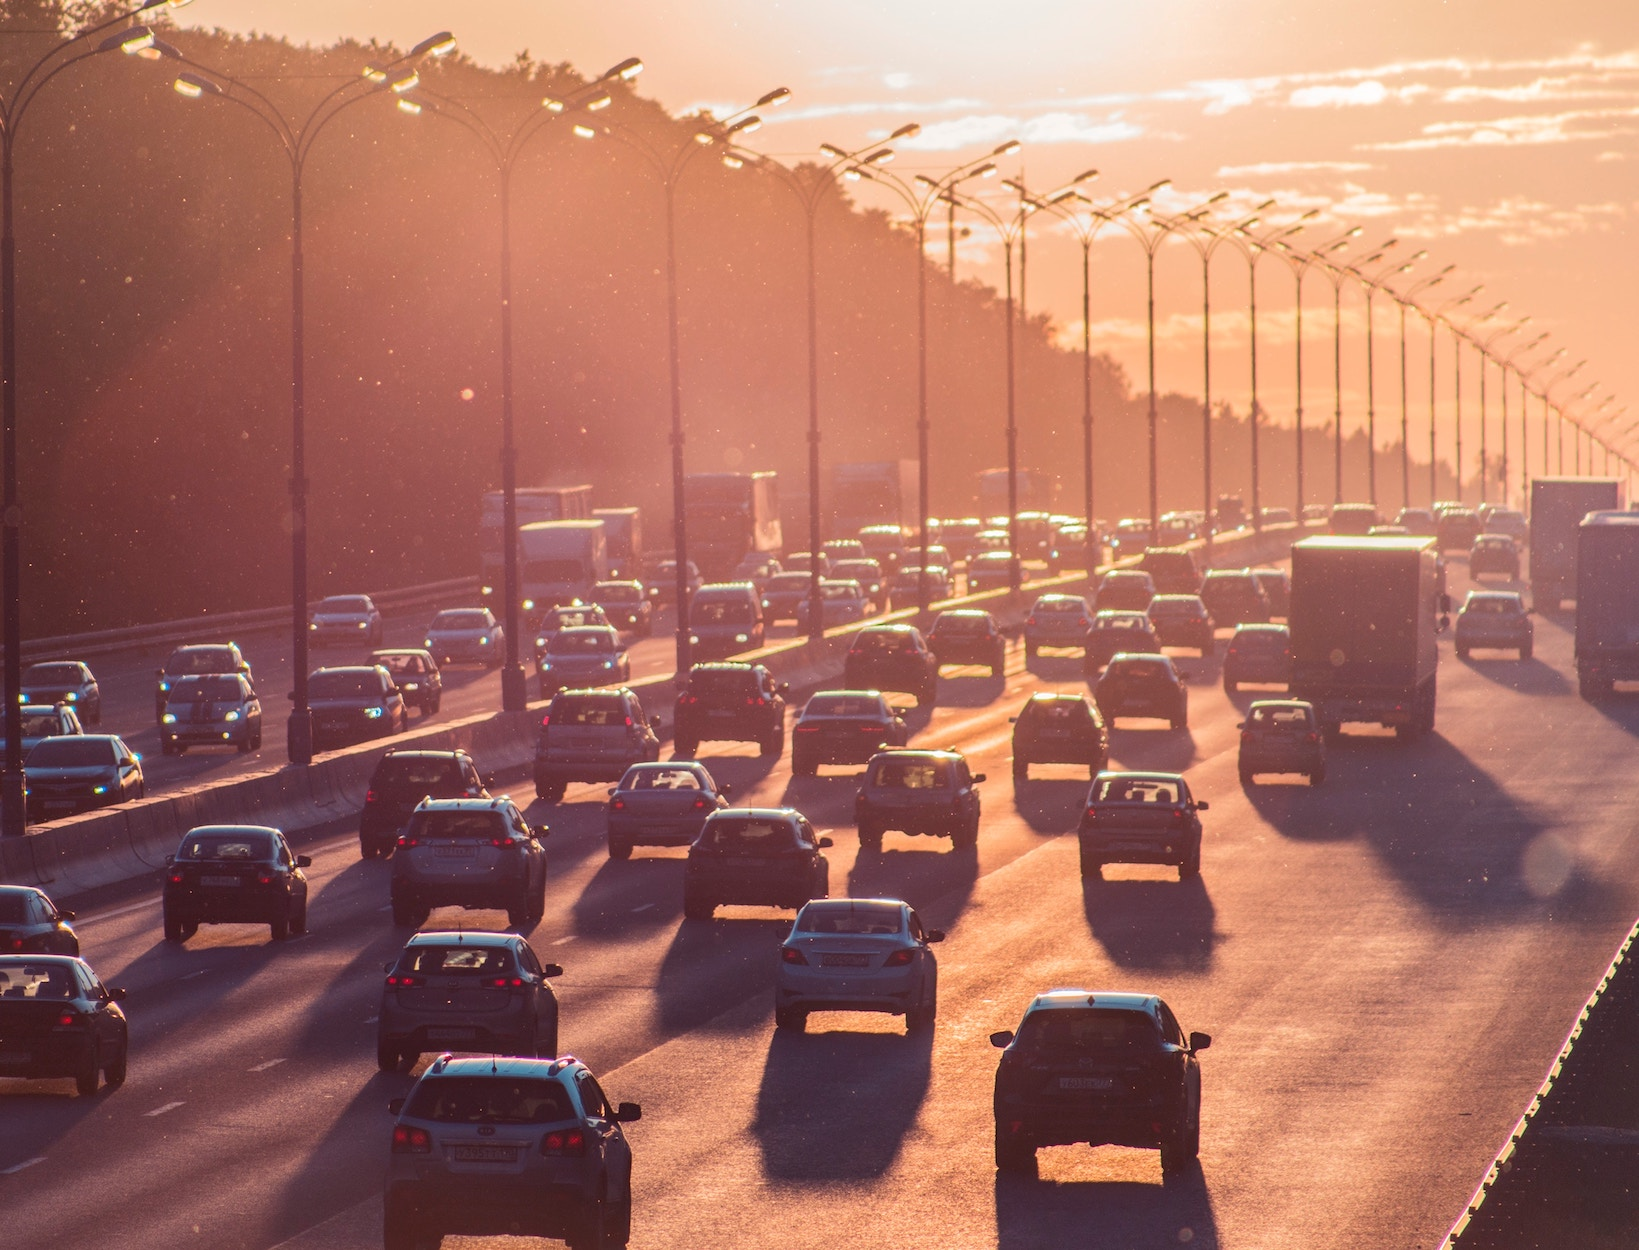 Stuck and Stressed: The Health Costs of Traffic